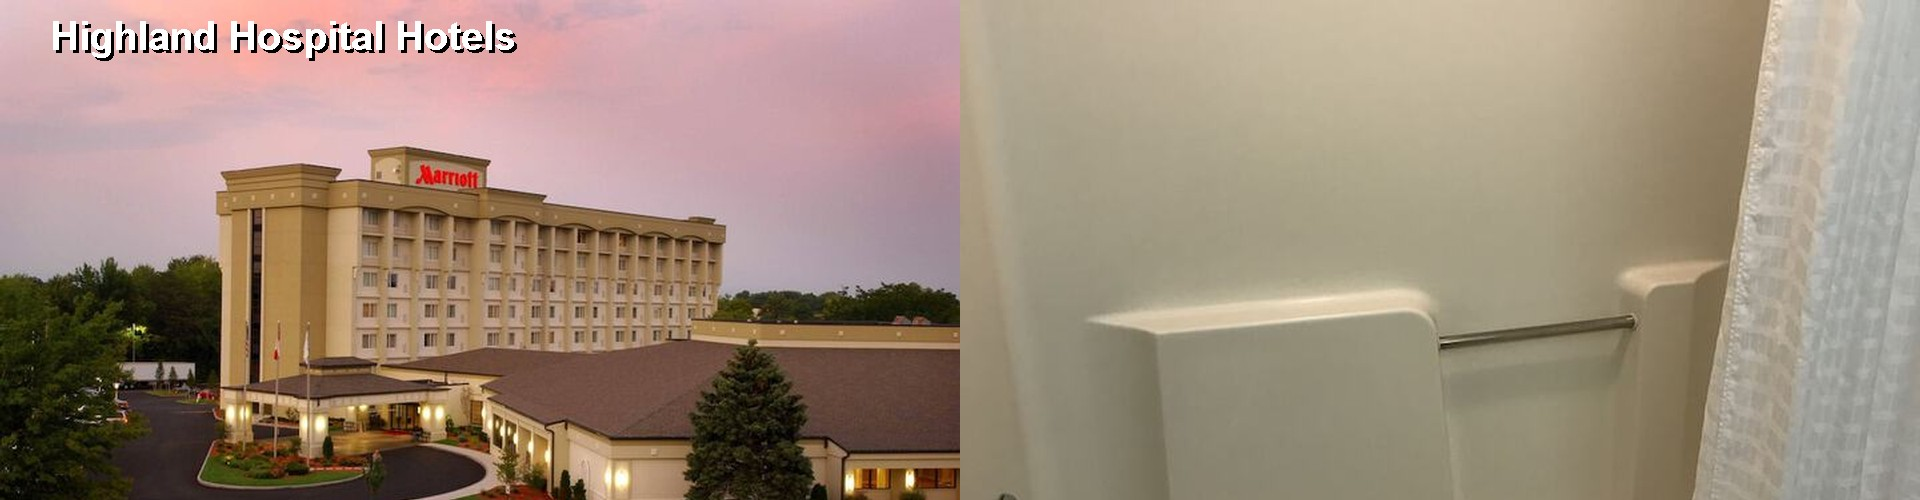 5 Best Hotels near Highland Hospital